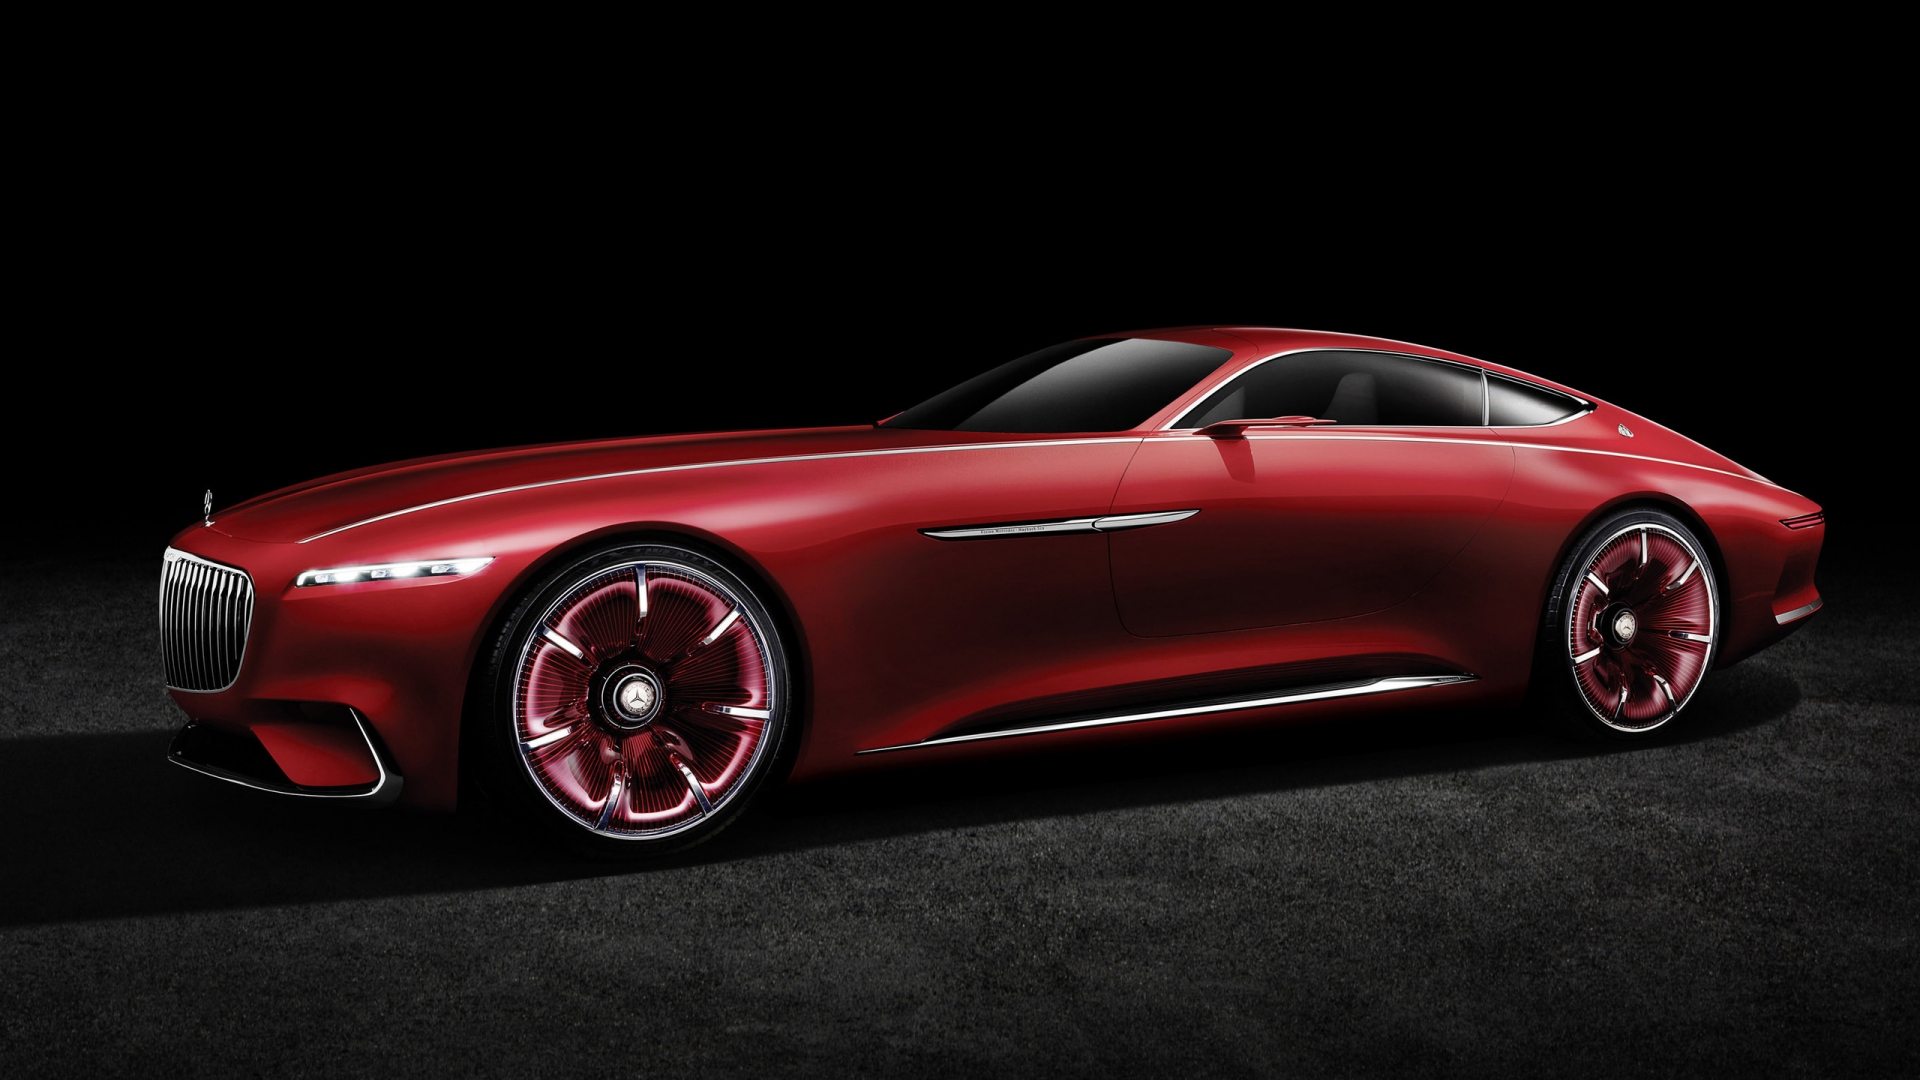 2016 Vision Mercedes Maybach 6 Side View for 1920 x 1080 HDTV 1080p resolution